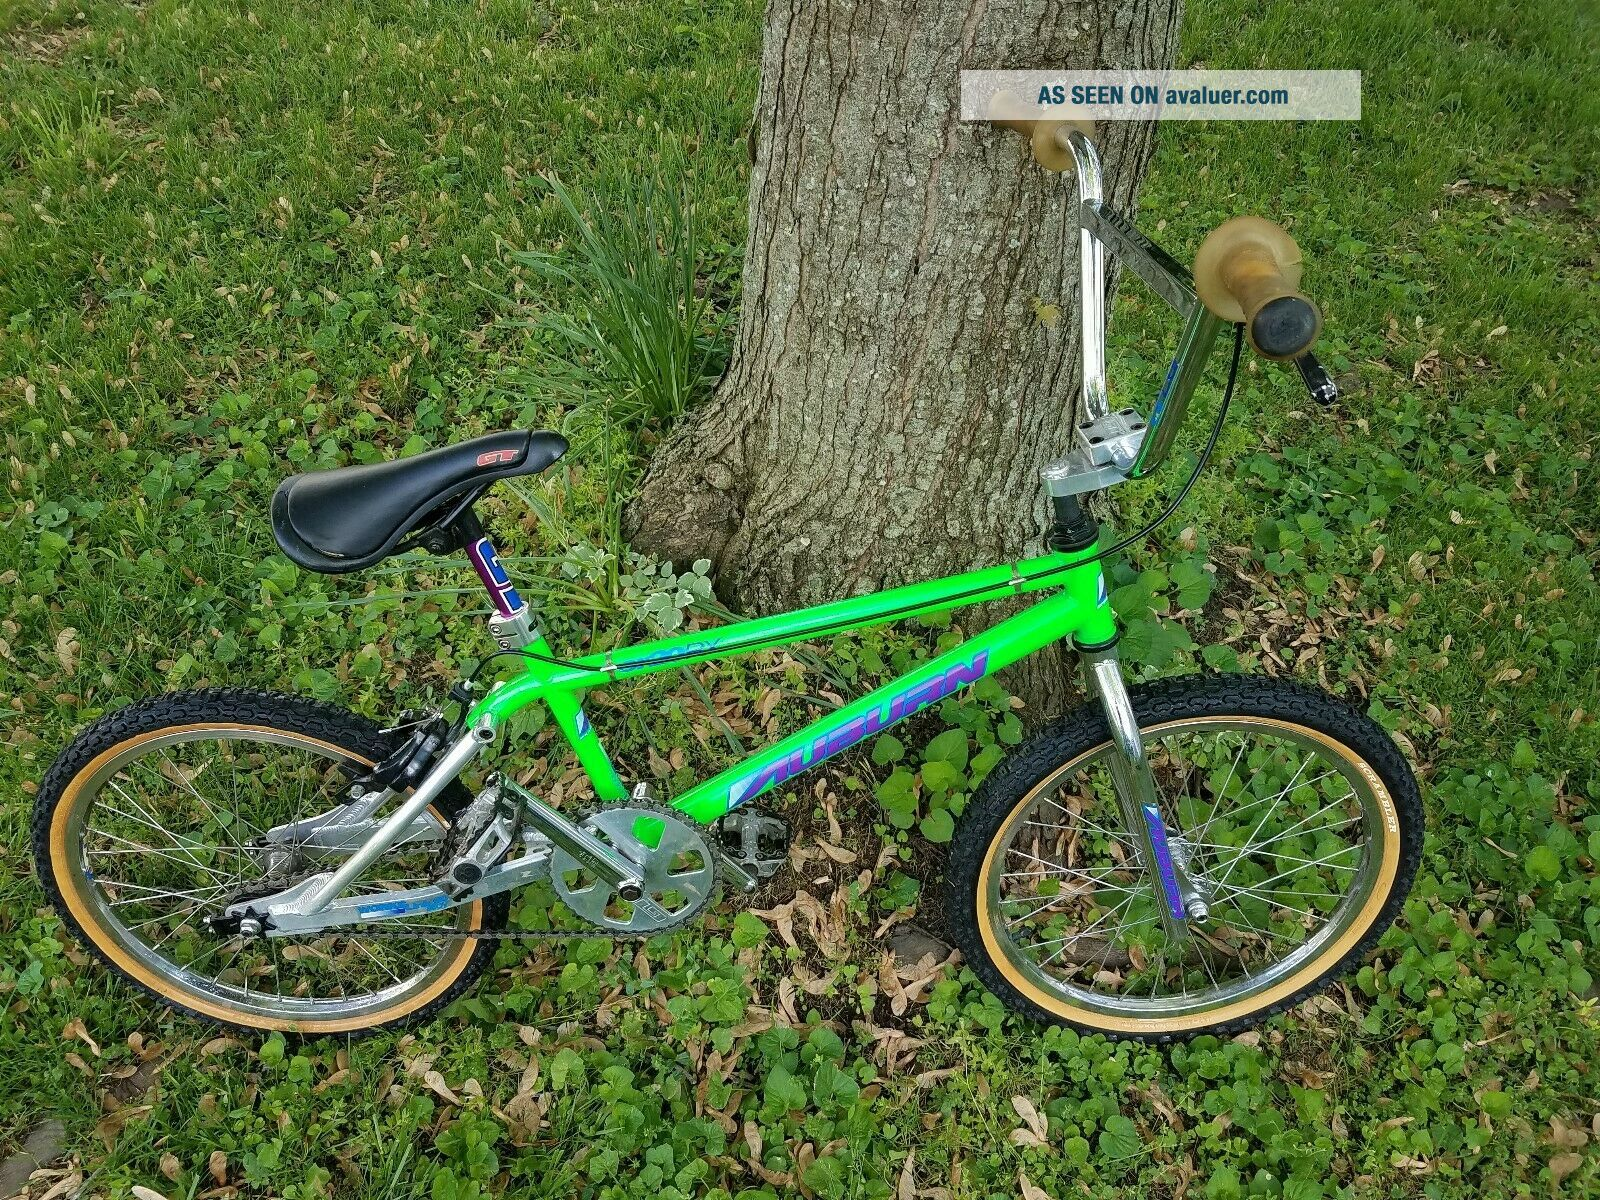 VINTAGE GREEN SILVER AUBURN CR - 20RX 1994 OWNER BMX FREESTYLE RACING